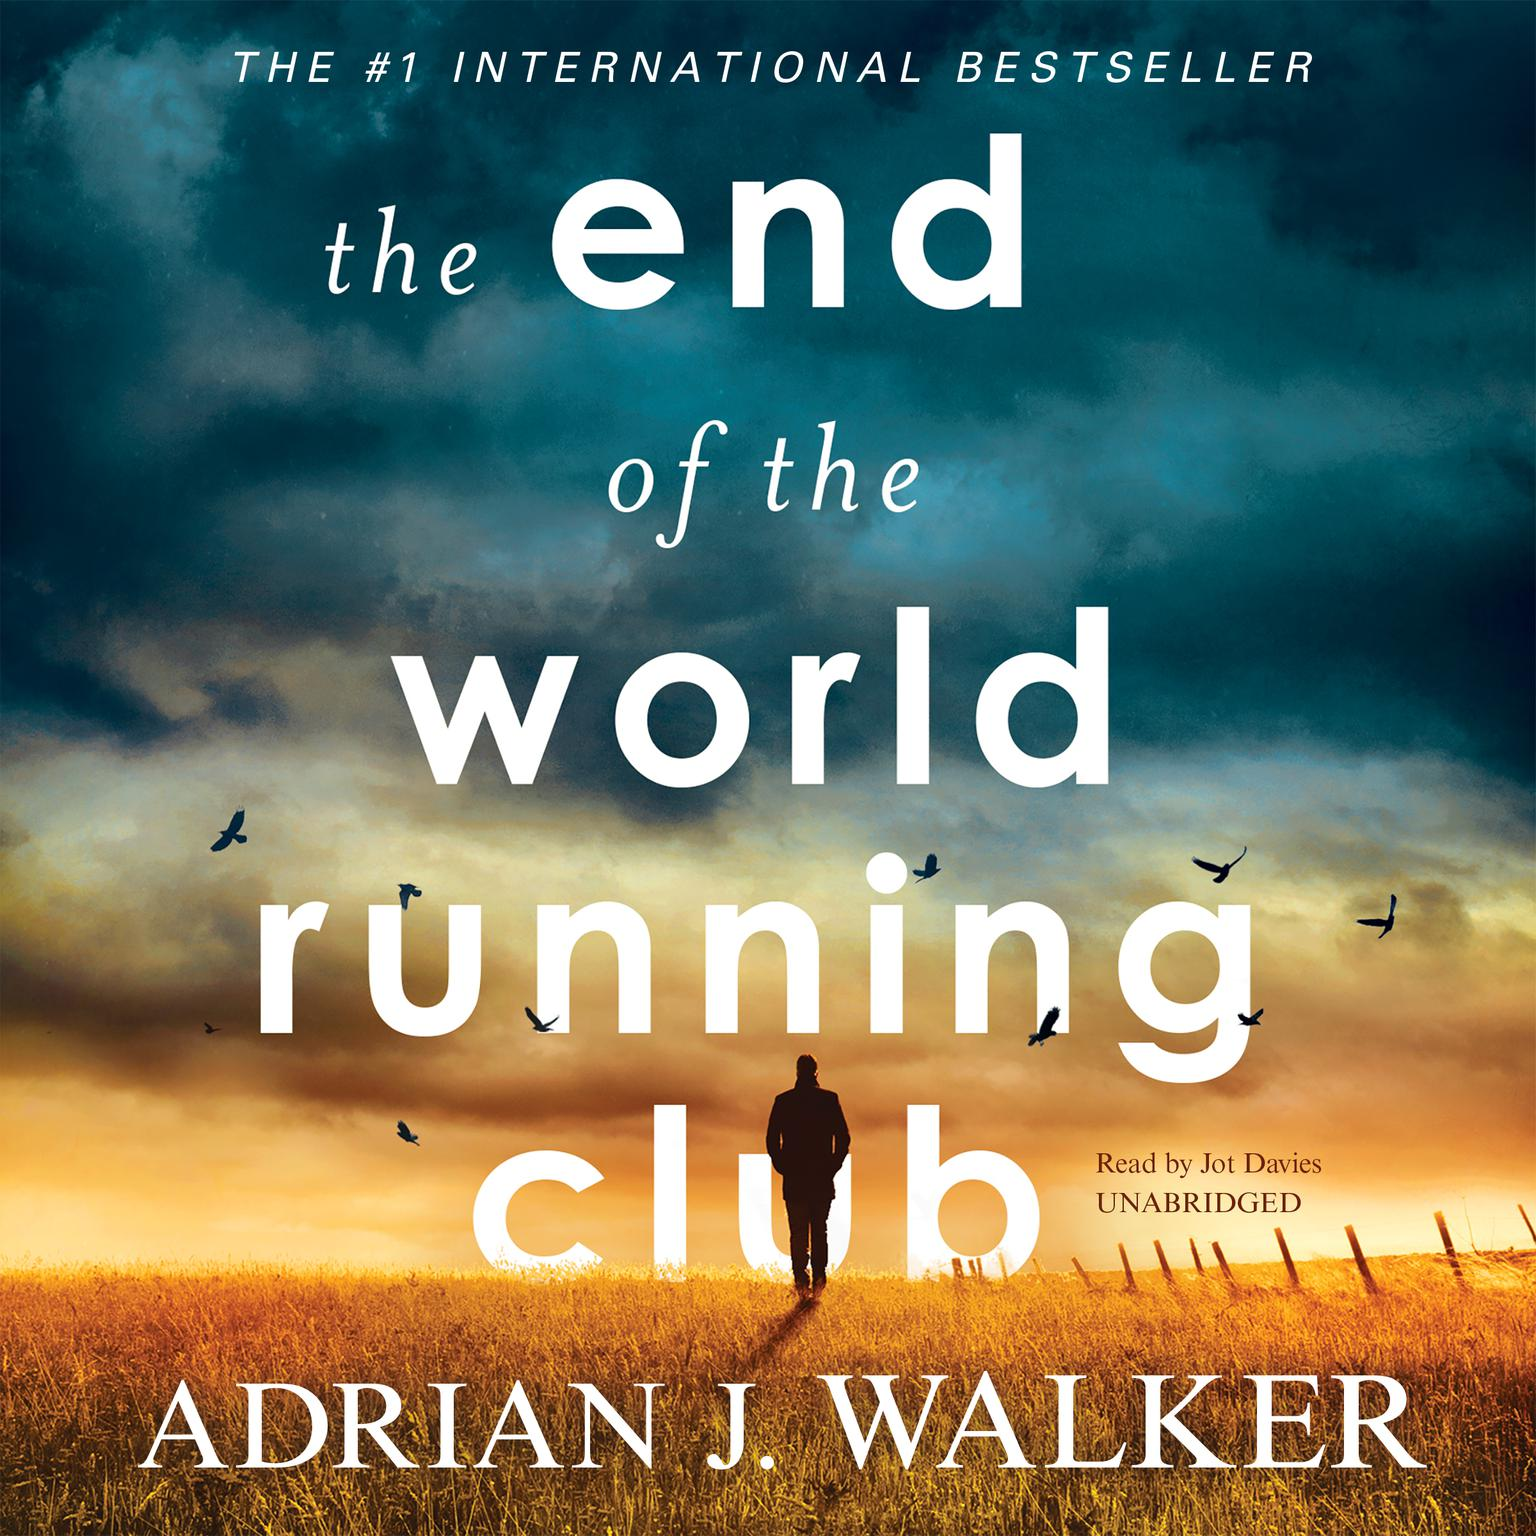 Printable The End of the World Running Club Audiobook Cover Art